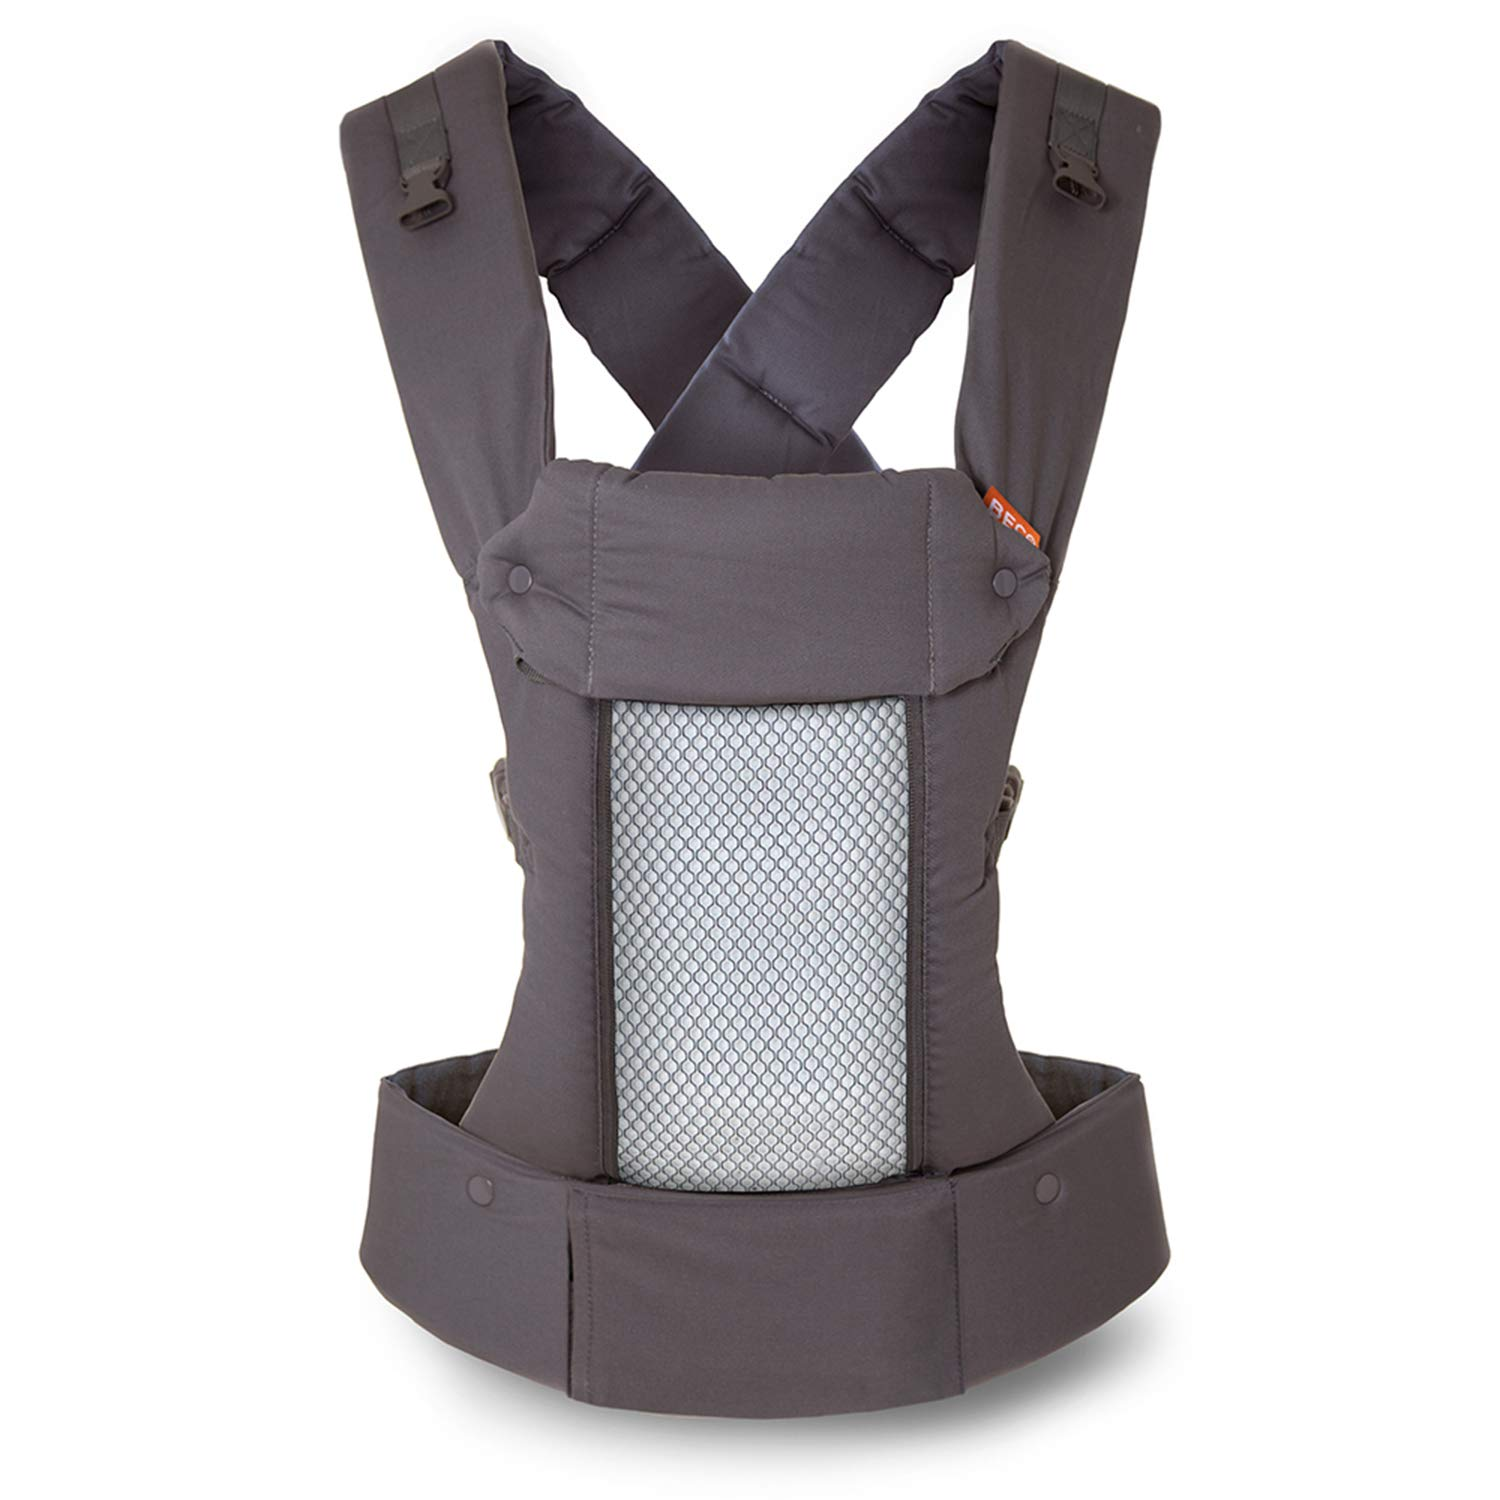 Beco 8 Baby Carrier, Cool Dark Grey – Supportive and Adaptable Carrier for Babies from 7 – 45 lbs with Convertible Cool Mesh Panel